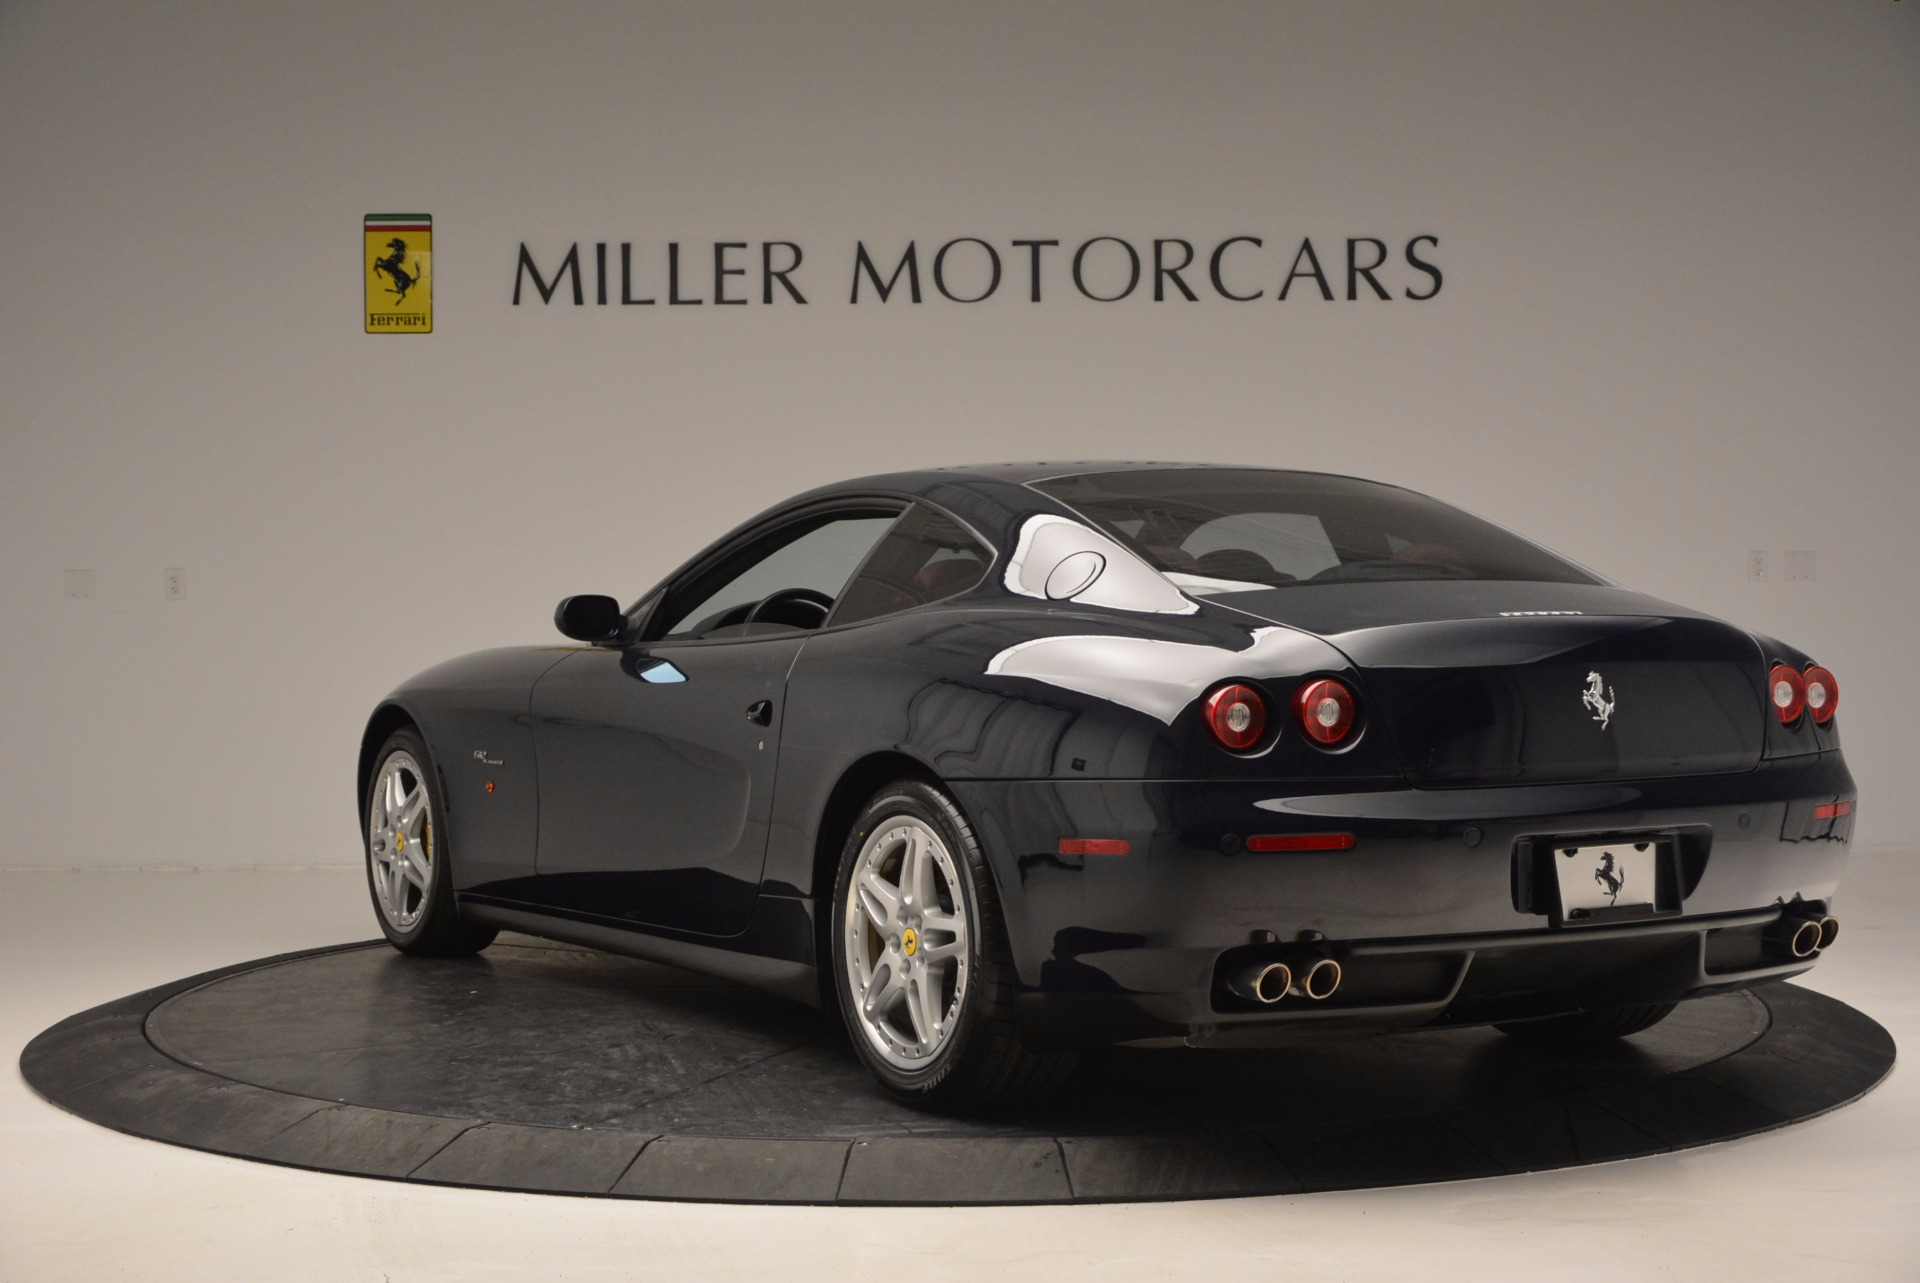 Used 2005 Ferrari 612 Scaglietti 6-Speed Manual For Sale In Greenwich, CT 854_p6